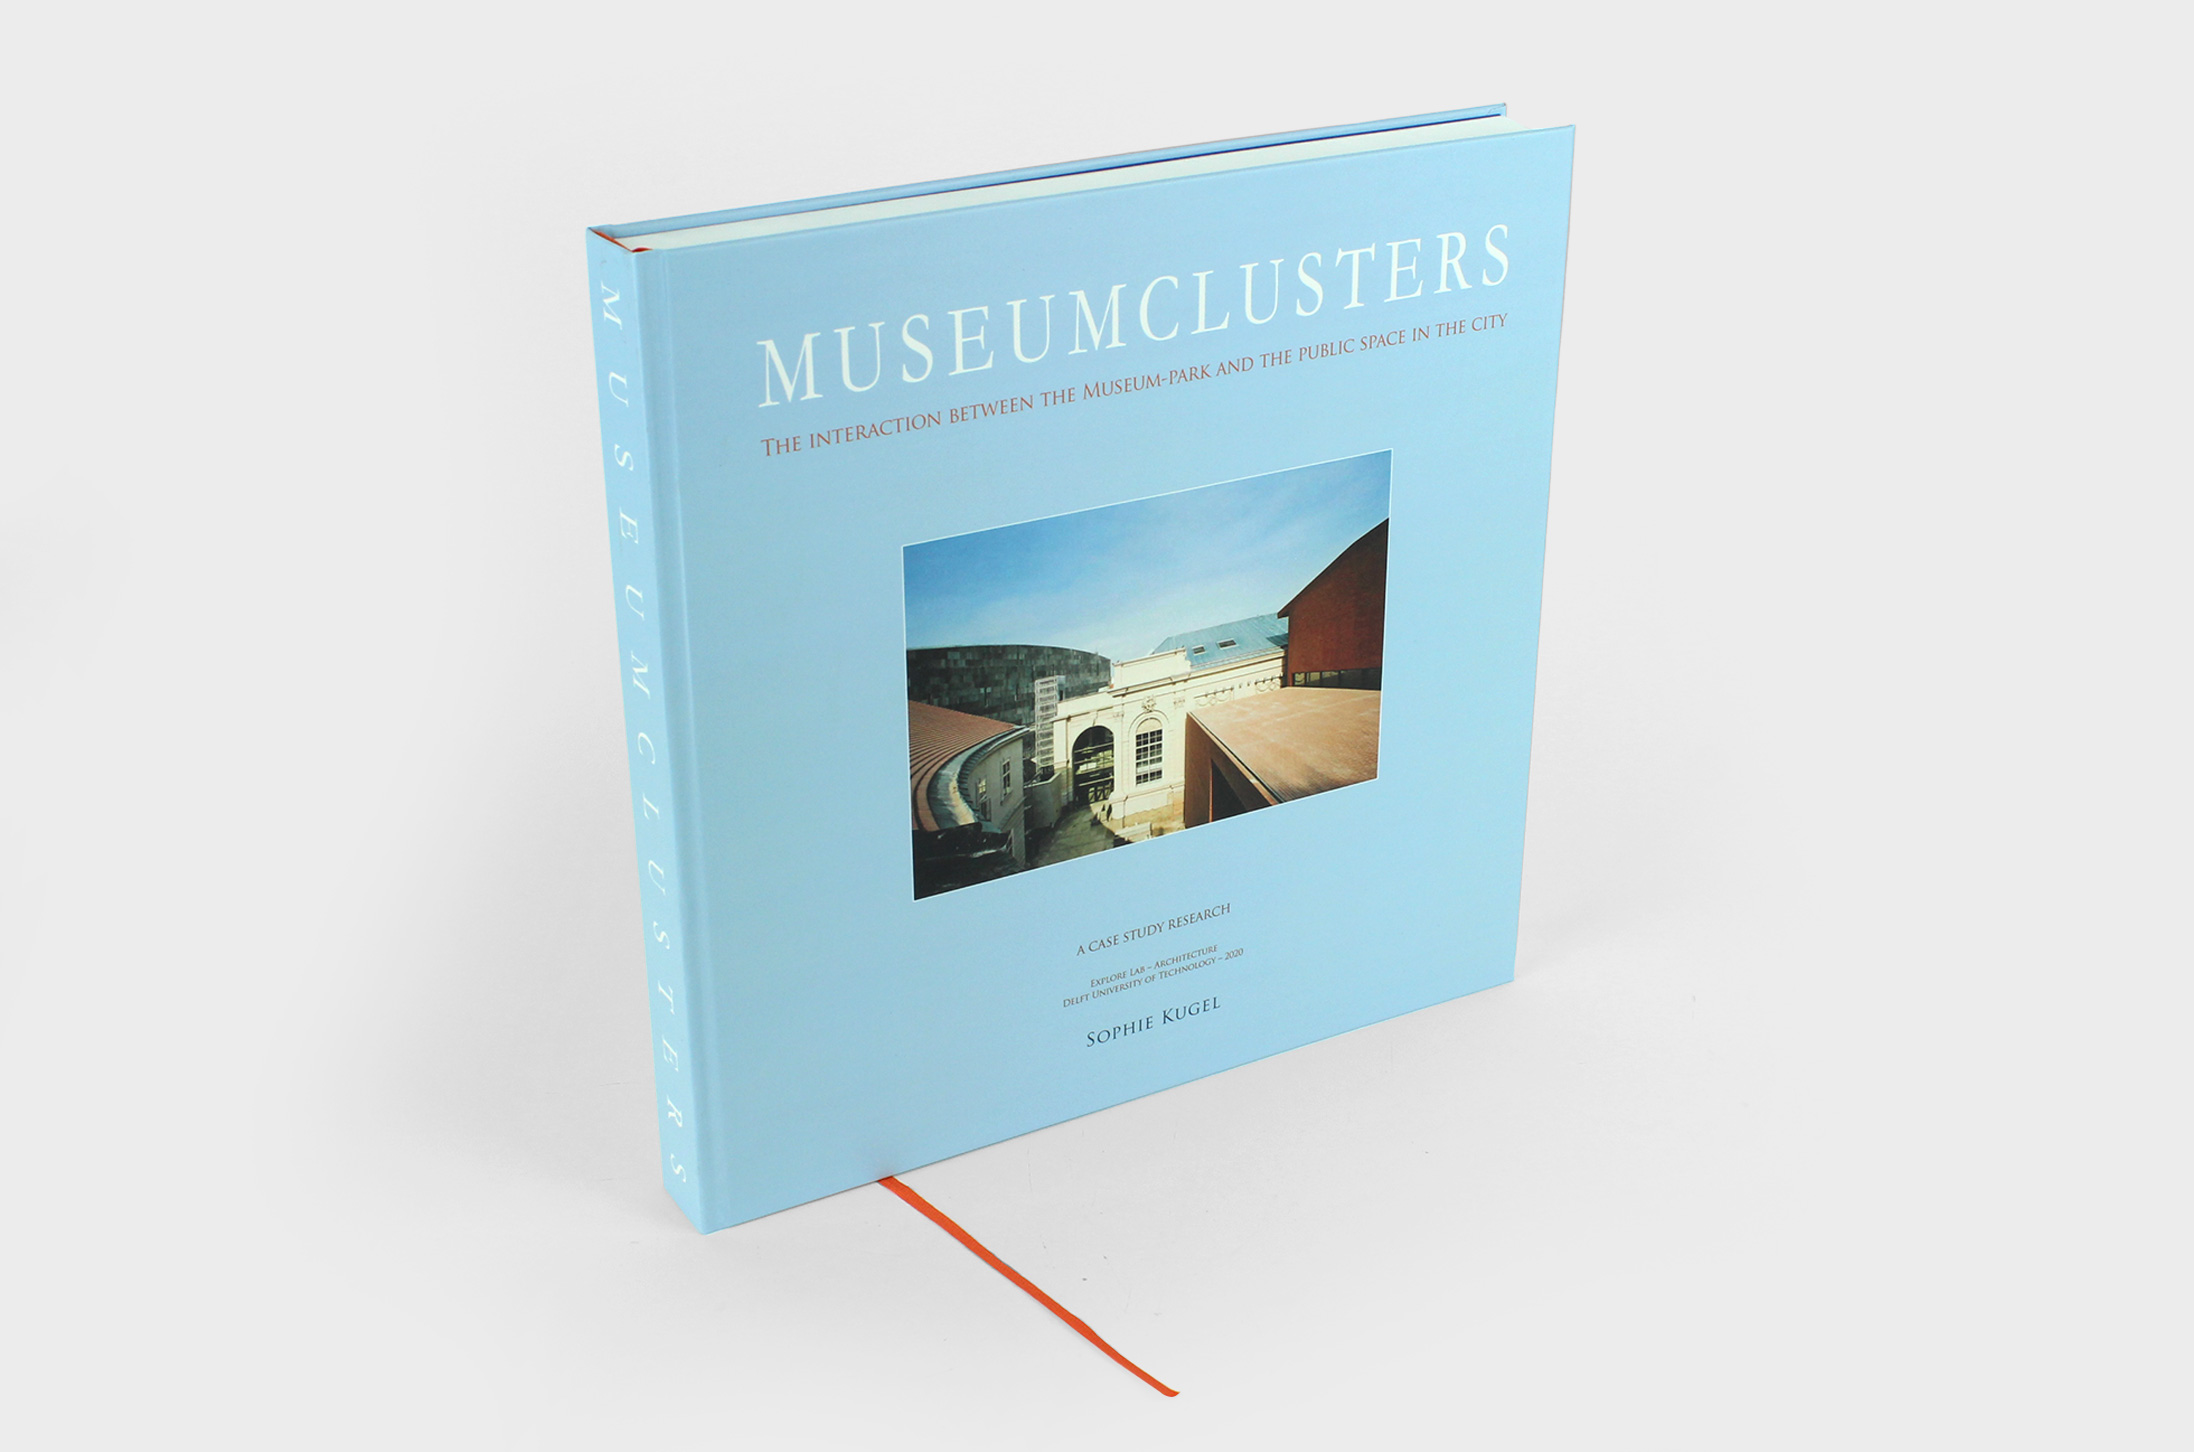 Museumclusters